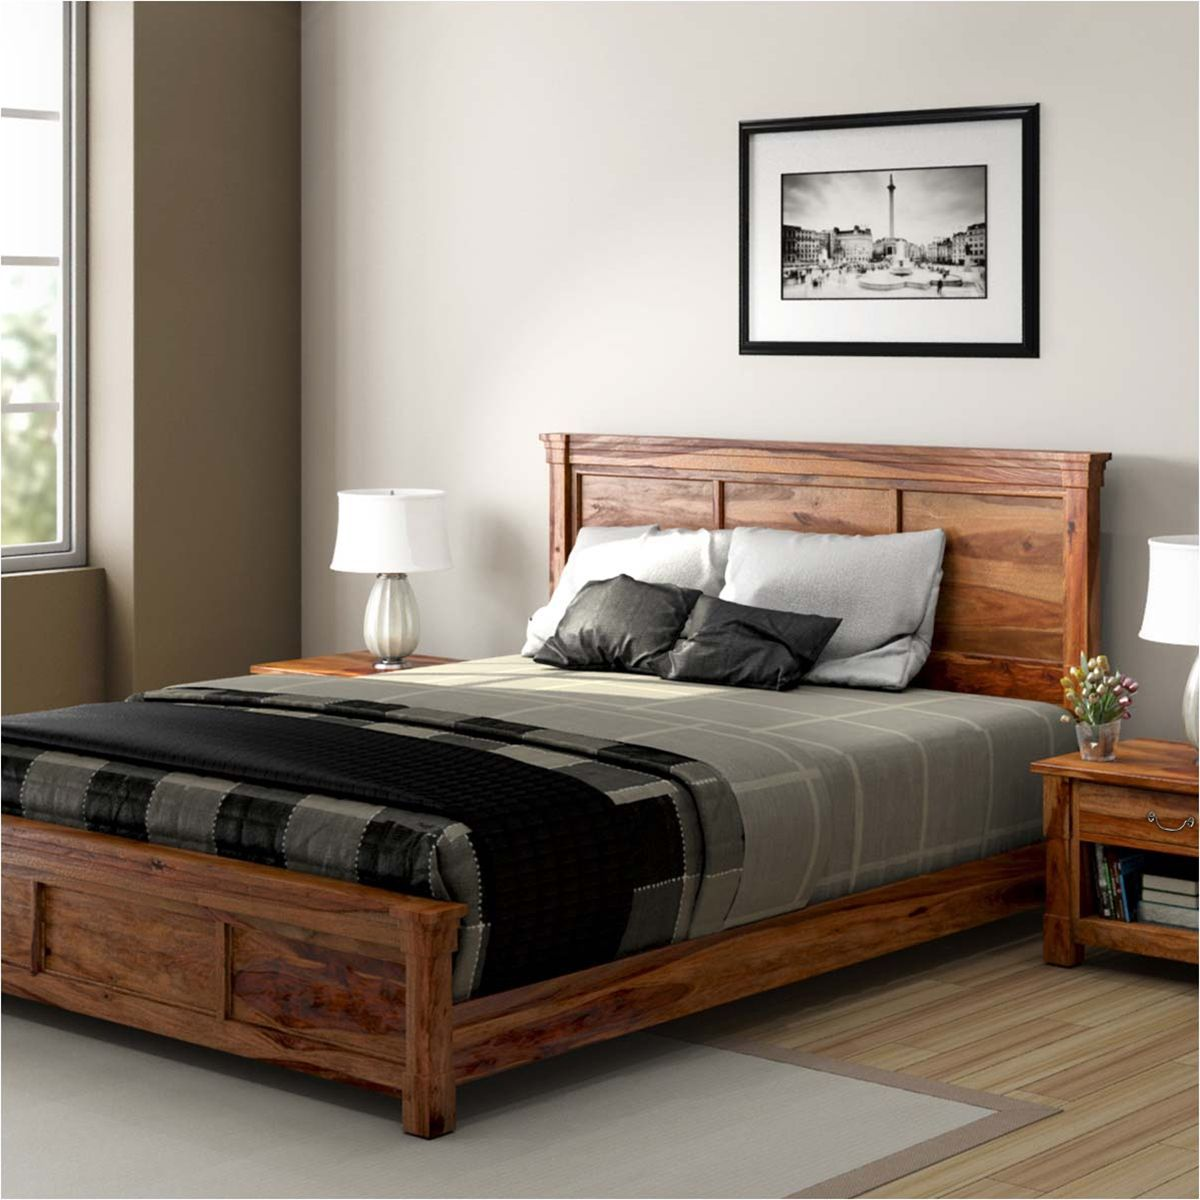 Fill Every Night With Sweet Dreams And Every Morning With New Possibilities With Our B Modern Bedroom Furniture Sets Modern Bedroom Furniture Wood Bedroom Sets